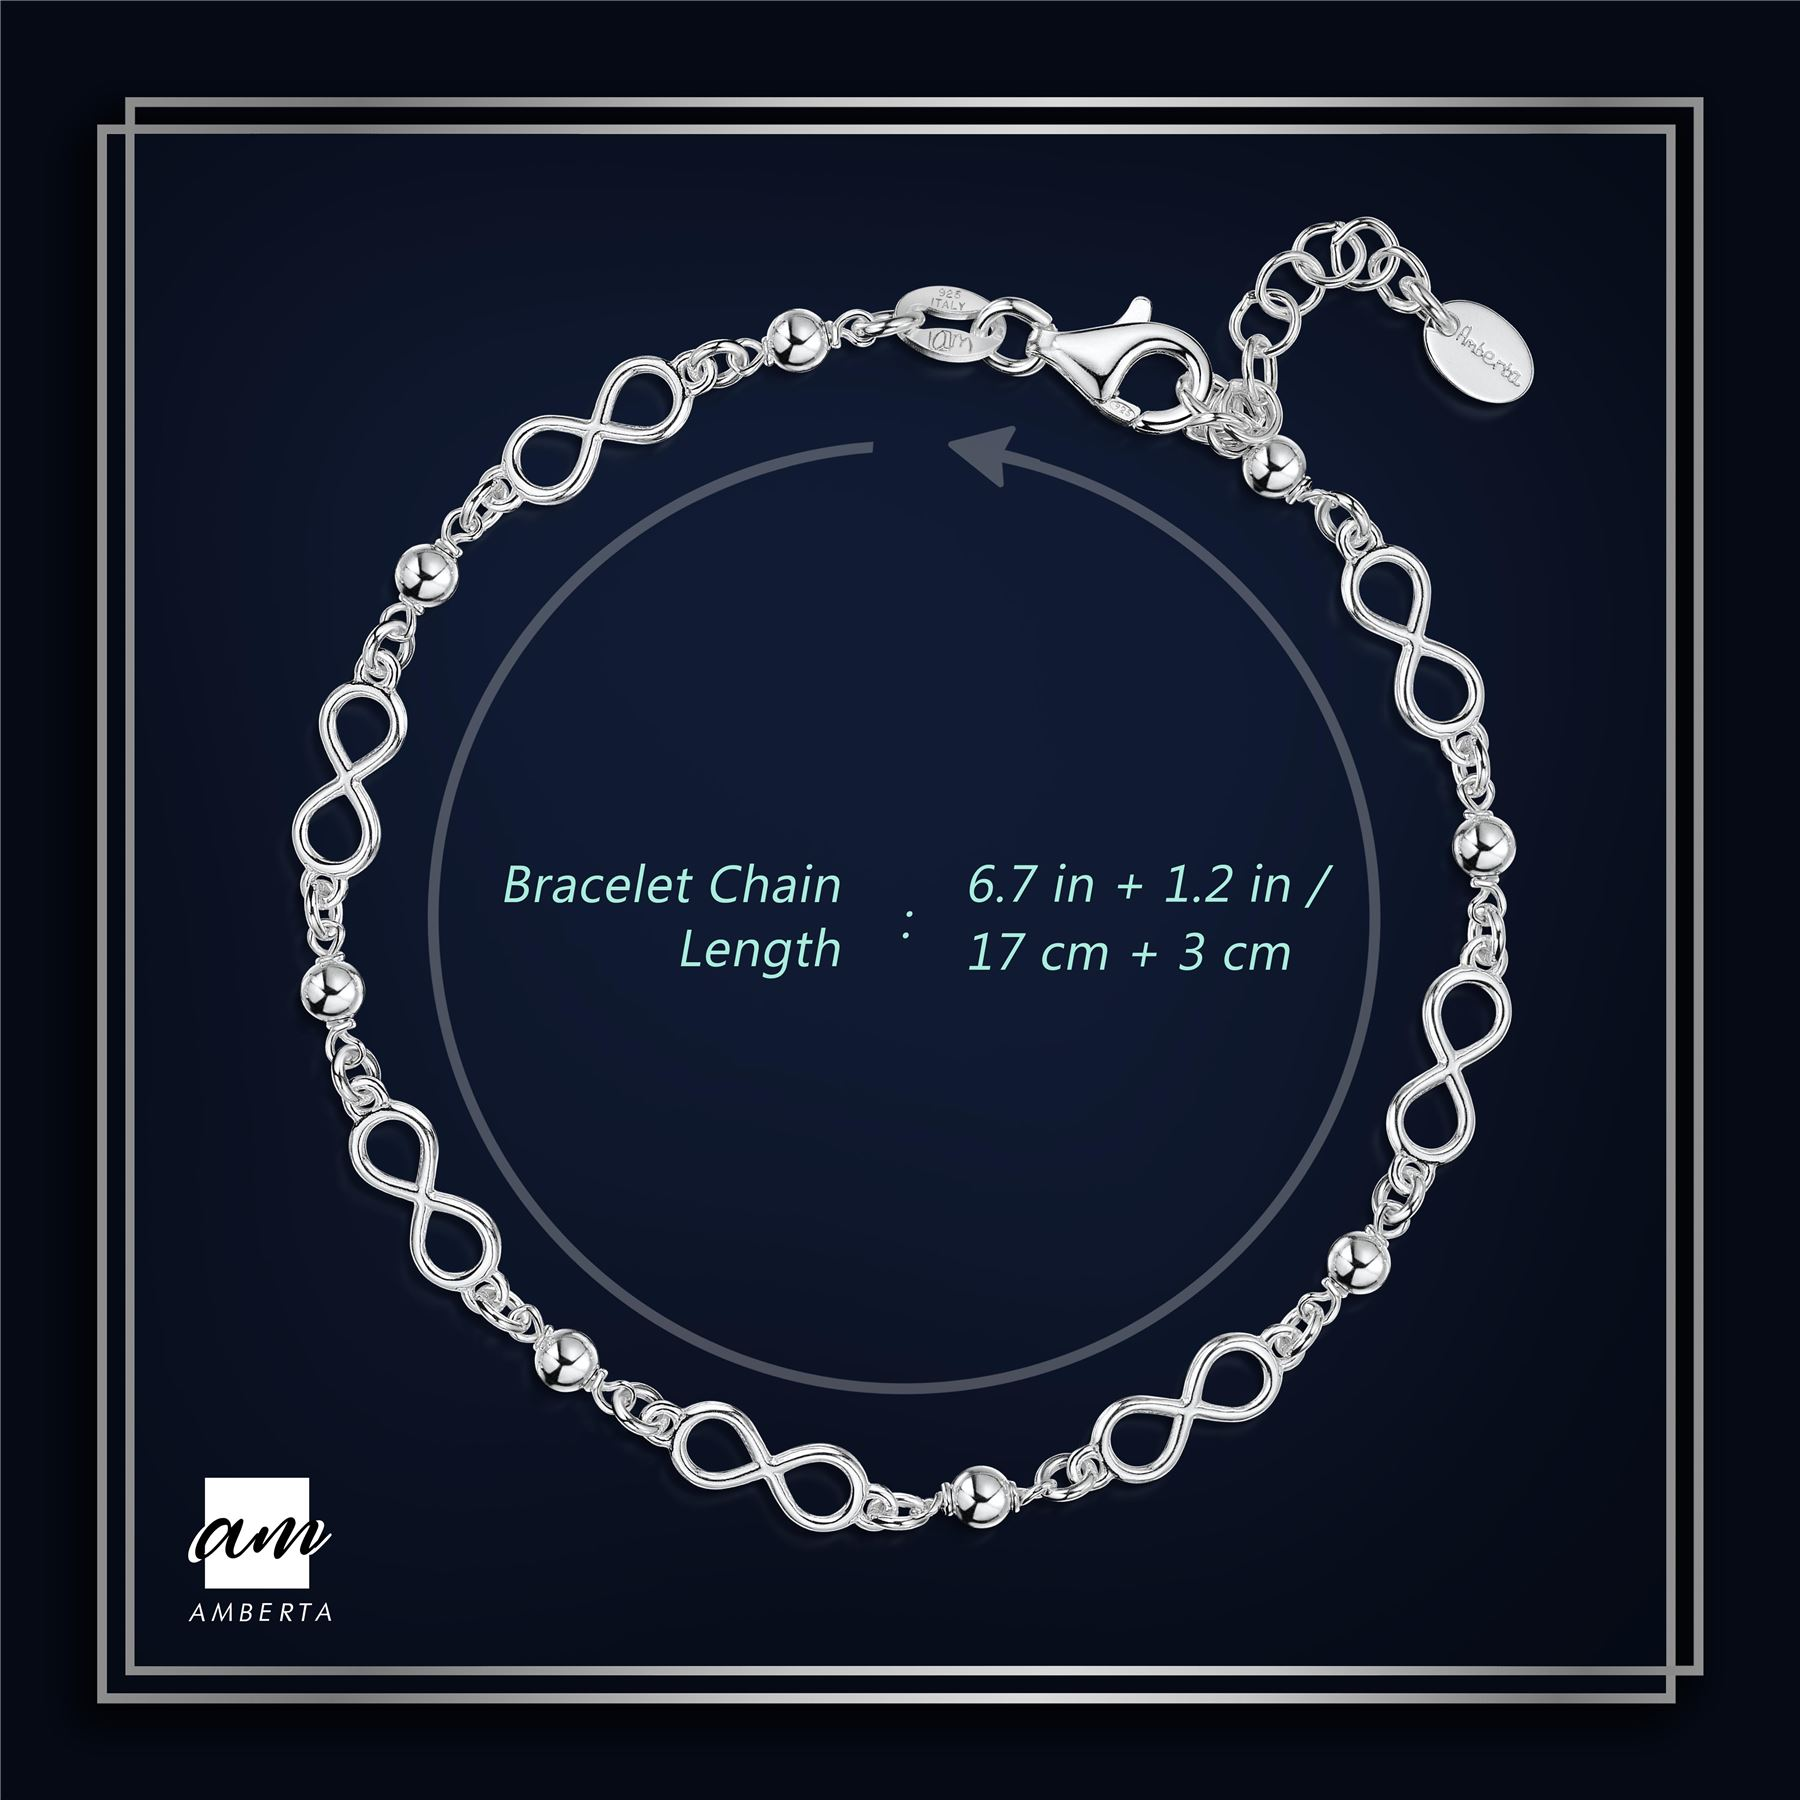 Amberta-925-Sterling-Silver-Adjustable-Rolo-Chain-Bracelet-with-Charms-for-Women miniature 10